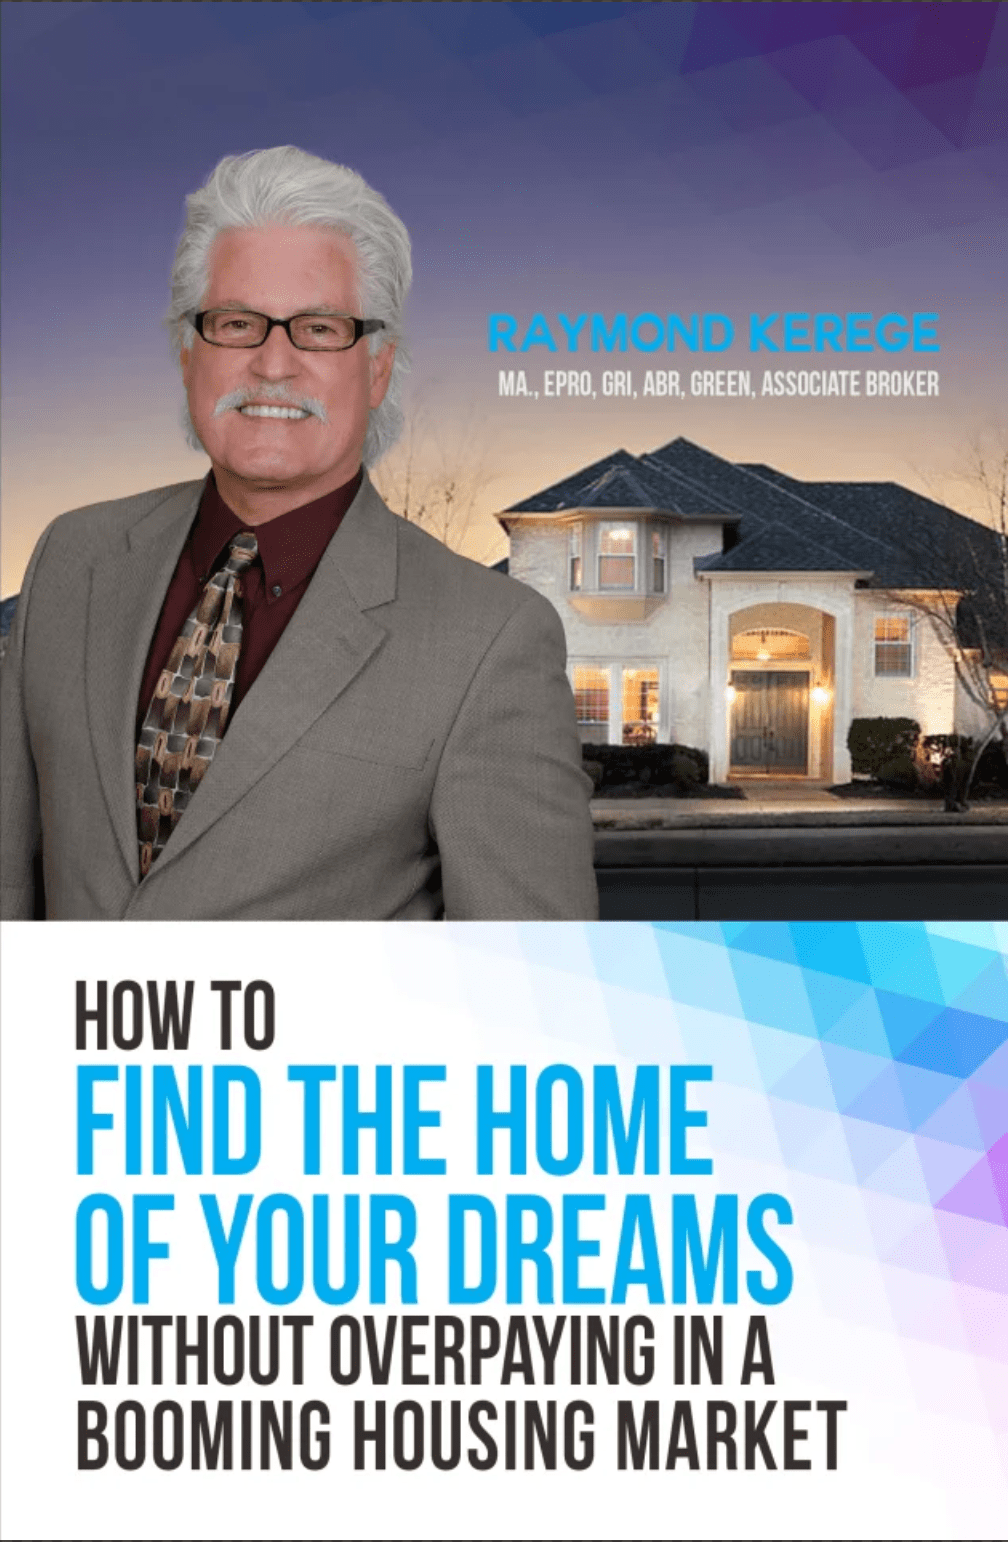 How To Find The Home Of Your Dreams Without Overpaying In A Booming Housing Market